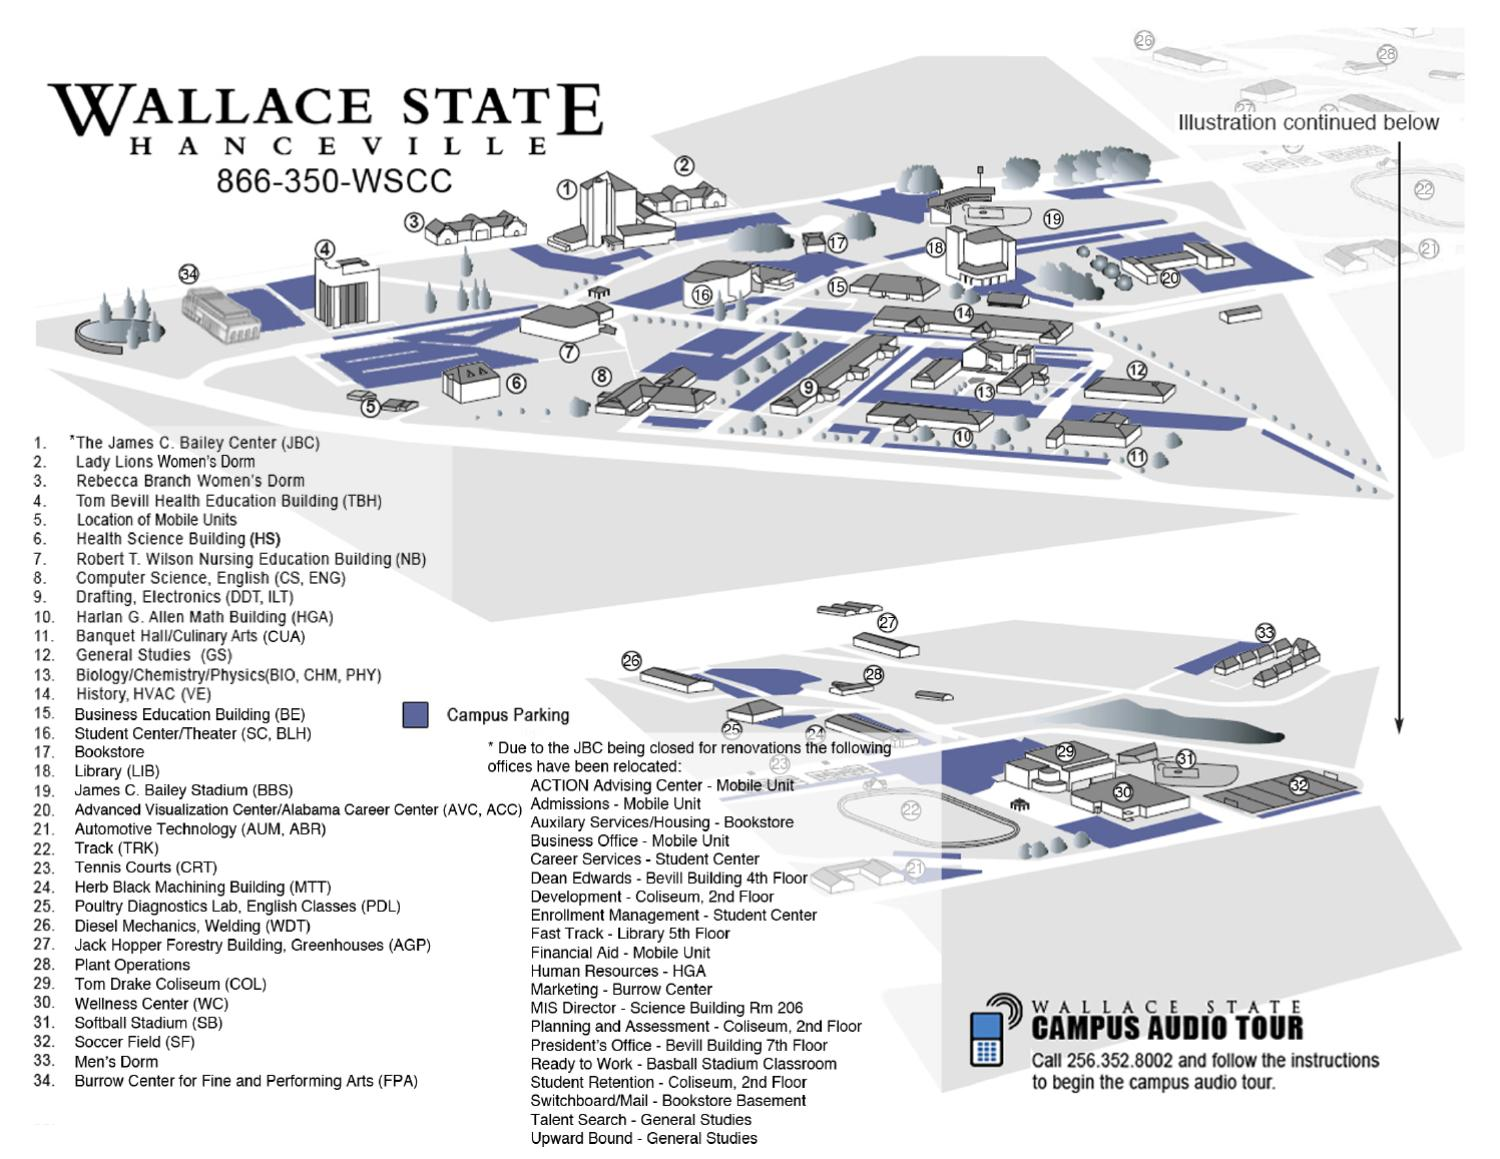 Campus Map by Wallace State Community College - issuu on map of washington state, map of richmond state, map of murray state, map of jackson state, map of idaho state, map of wright state, map of plymouth state, map of ball state, map of weber state, map of wayne state, map of chattanooga state,